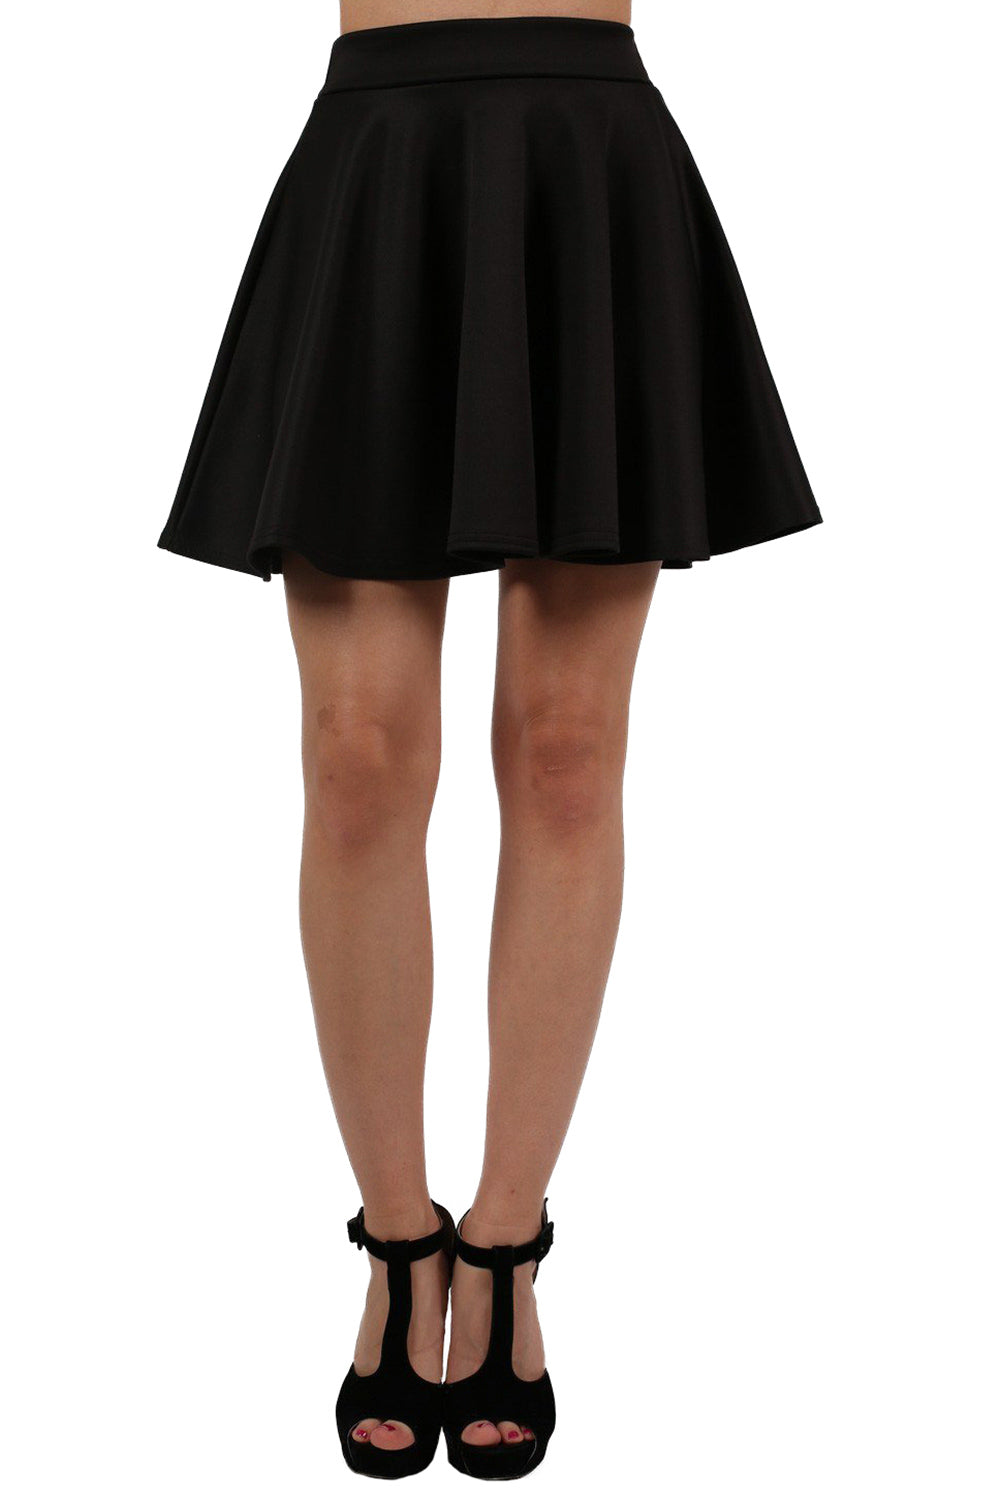 Scuba Skater Skirt in Black